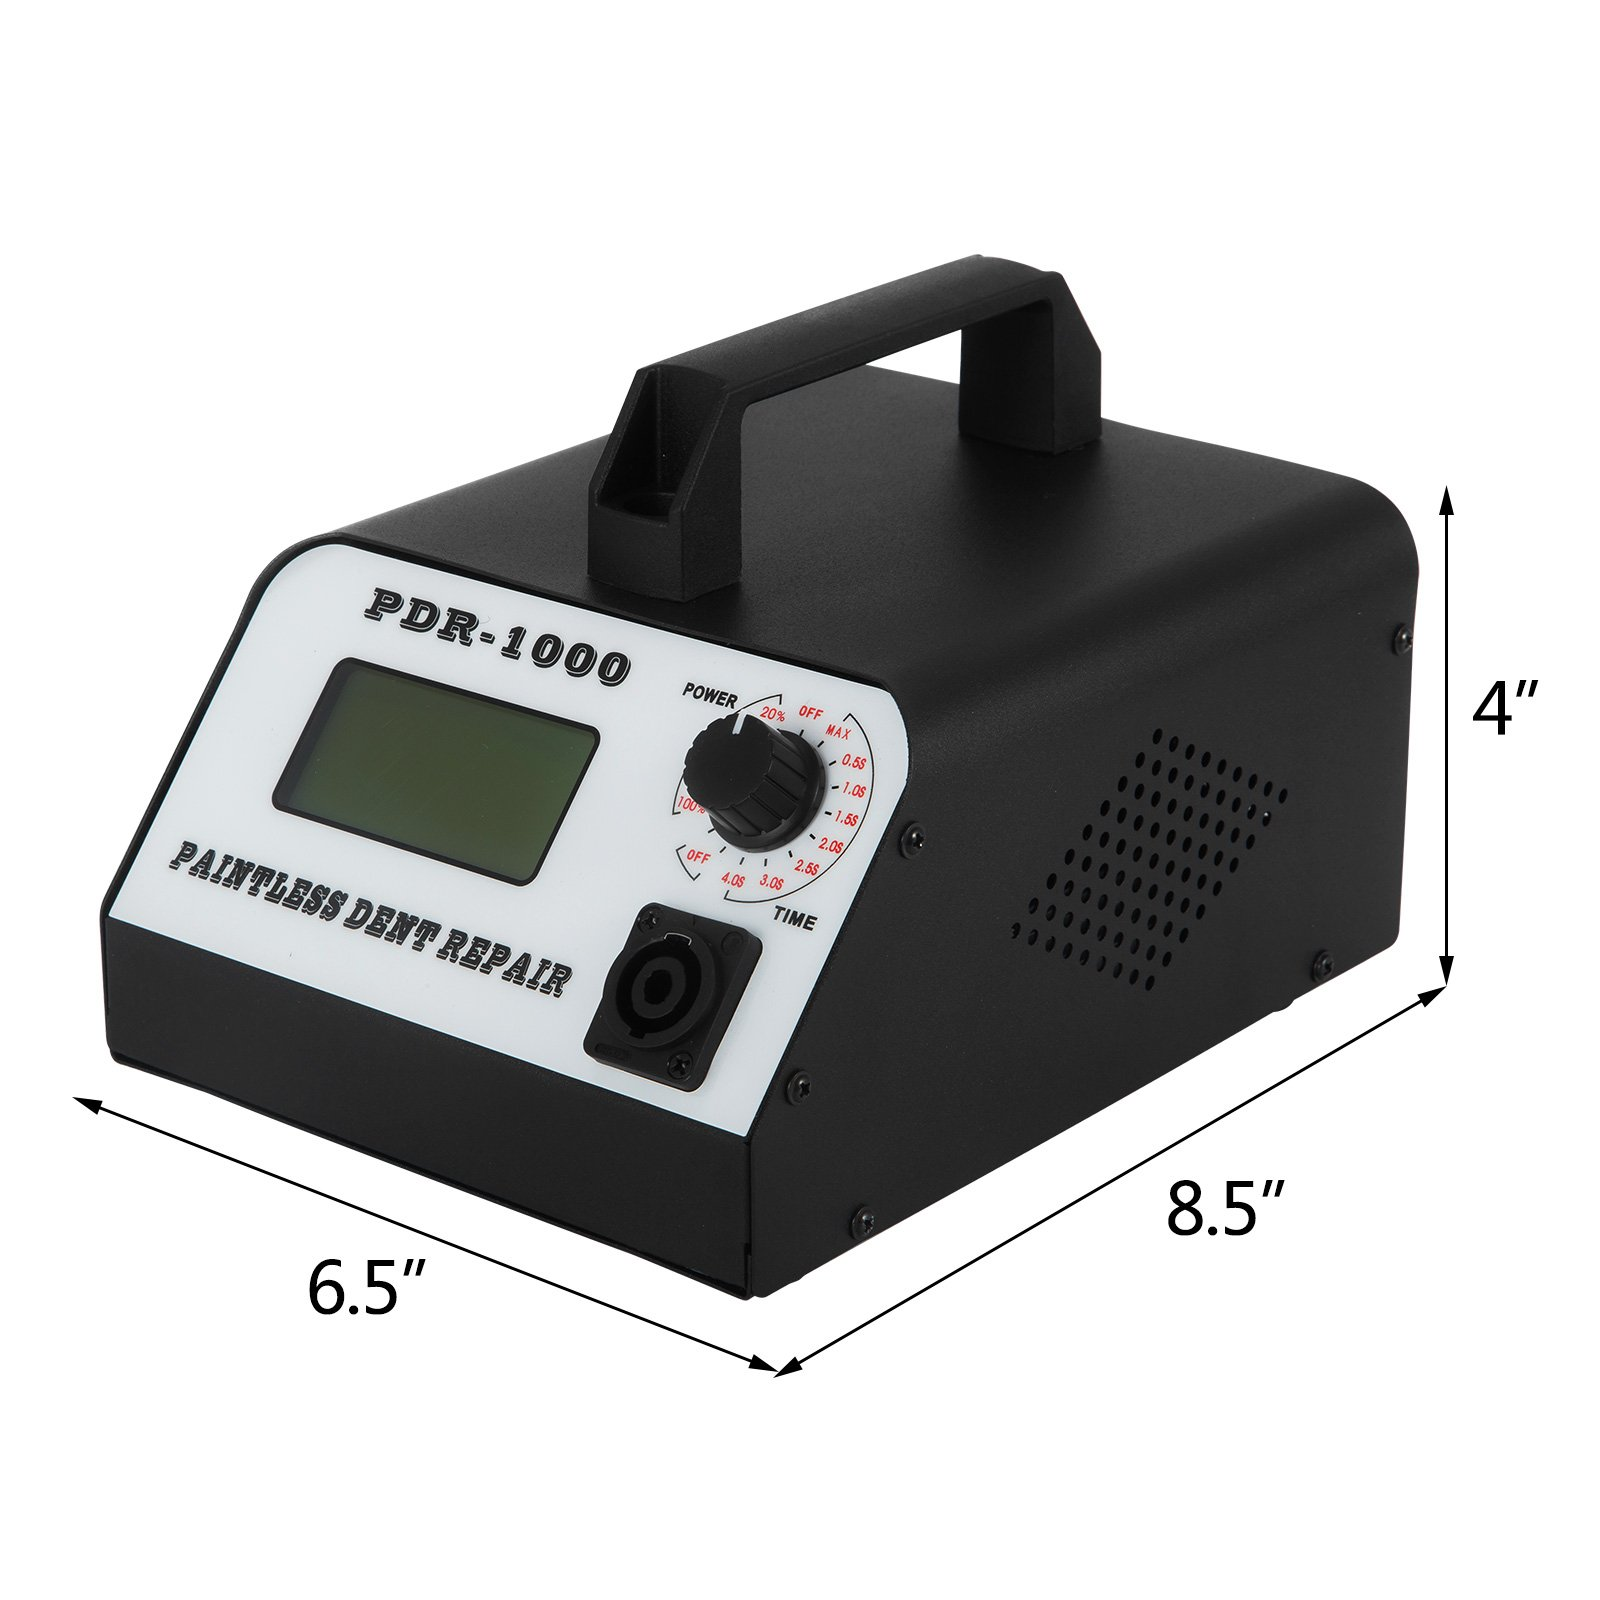 Mophorn Induction Heater for Removing Dents Sheet Metal Repair Tools Induction Dent Repair Metal Dent Repair Tools Multiple Choices (800W) by Mophorn (Image #2)